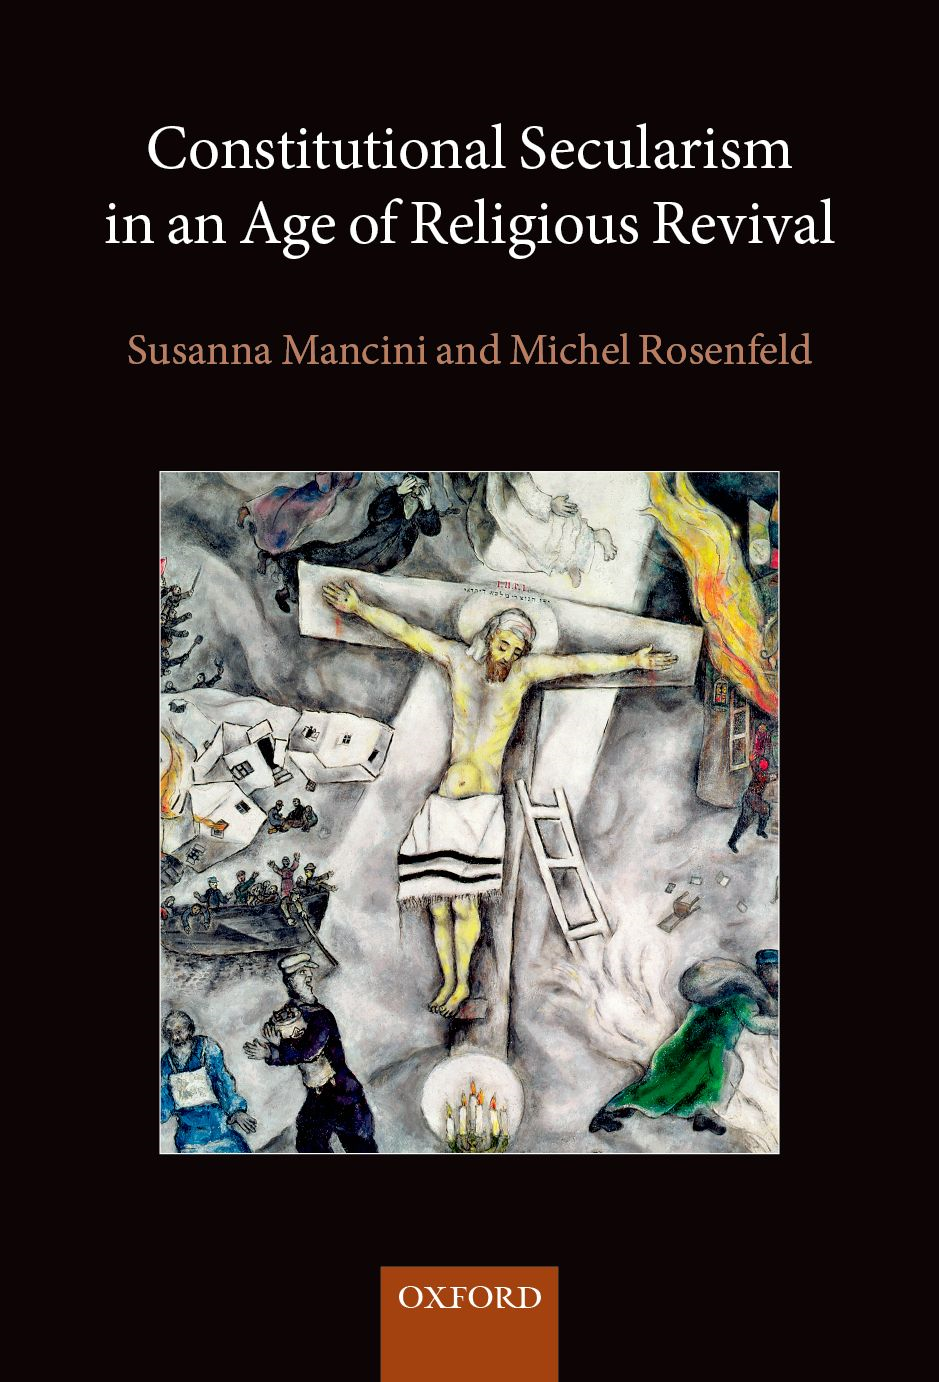 Constitutional Secularism in an Age of Religious Revival